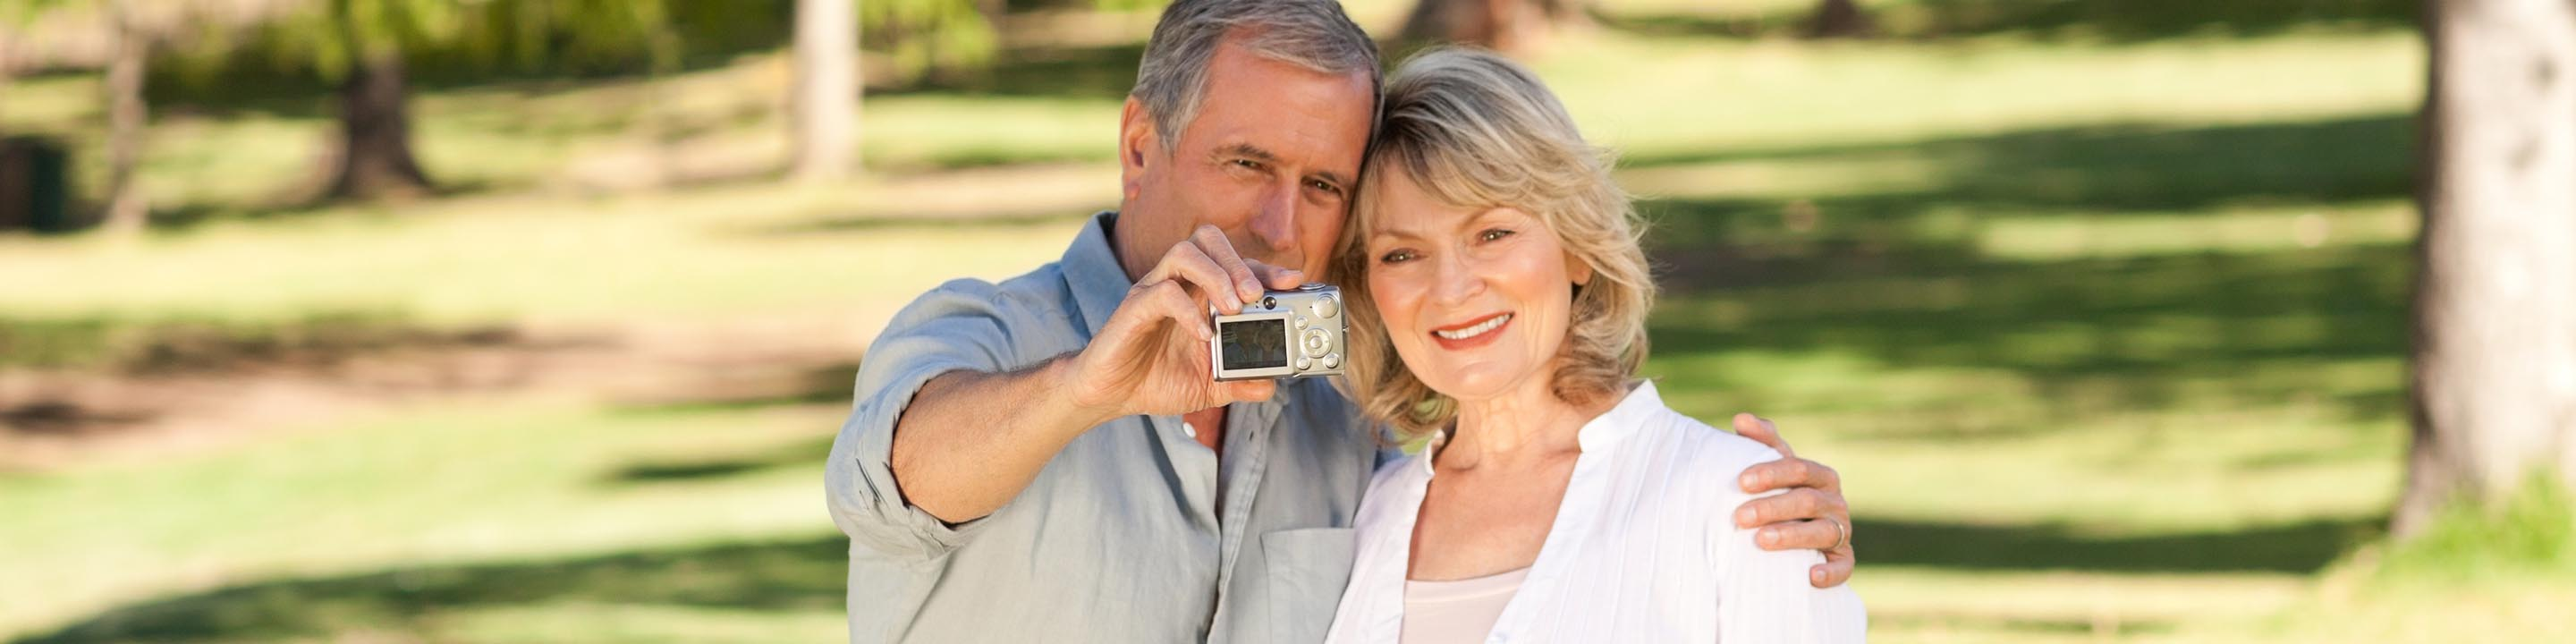 Image of husband and wife taking a picture.